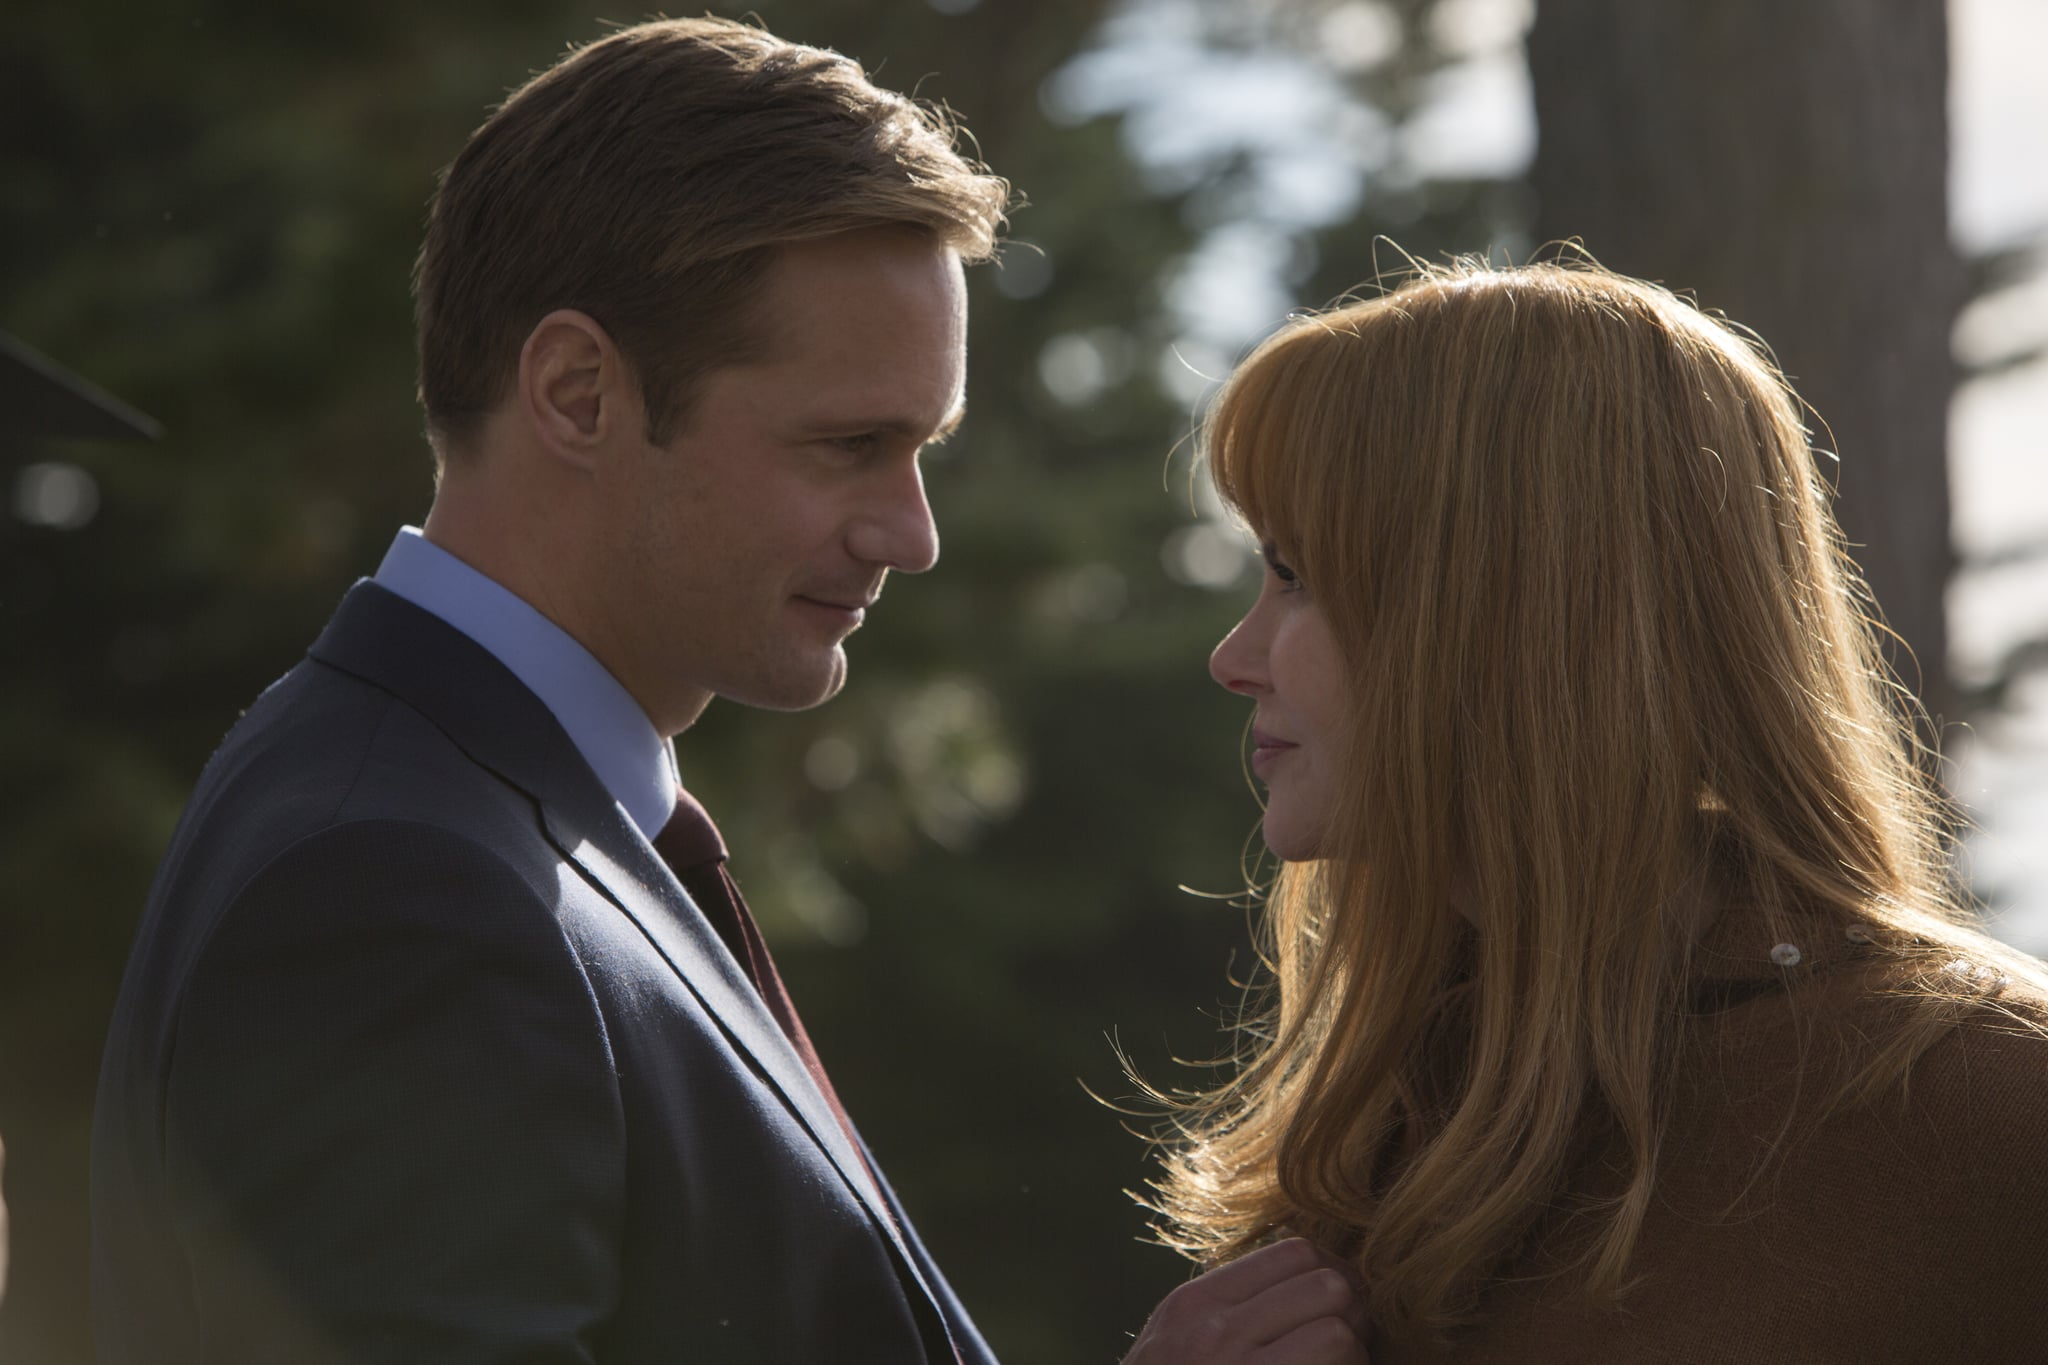 Big Little LiesSeries 01First LookCast Name Display: Skarsgard, Alexander;Kidman, NicoleCharacter Display: Perry Wright;Celeste Wright©2017 Home Box Office, Inc. All rights reserved. HBO®